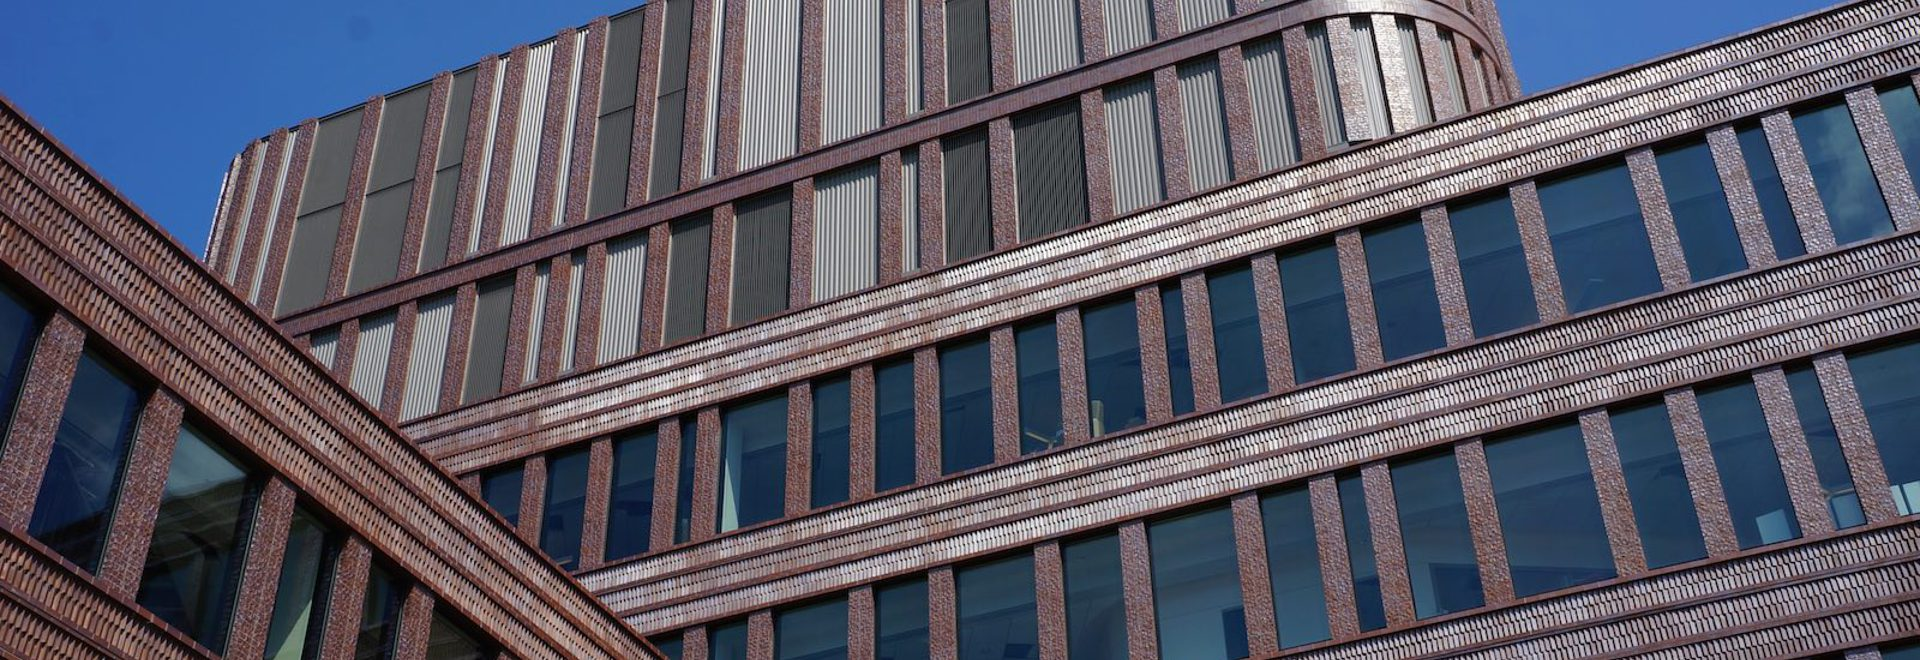 Ornate brickwork forms a sinuous façade to the new Bruce C. Bolling Municipal Building.(All photos courtesy Mecanoo unless otherwise stated)